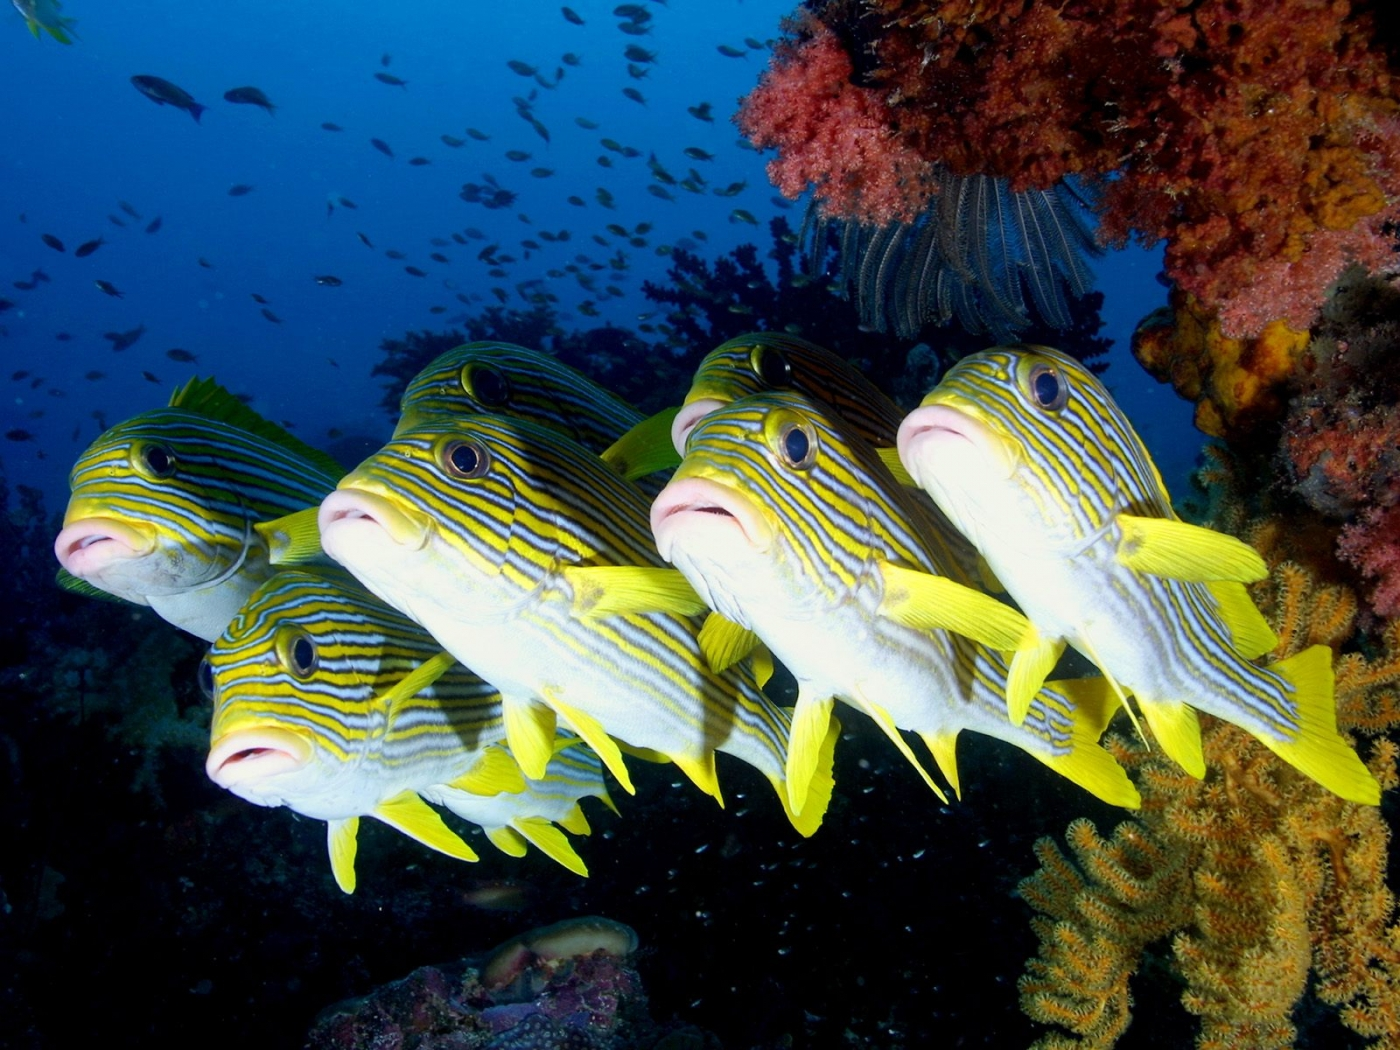 33846 download wallpaper Animals, Fishes screensavers and pictures for free